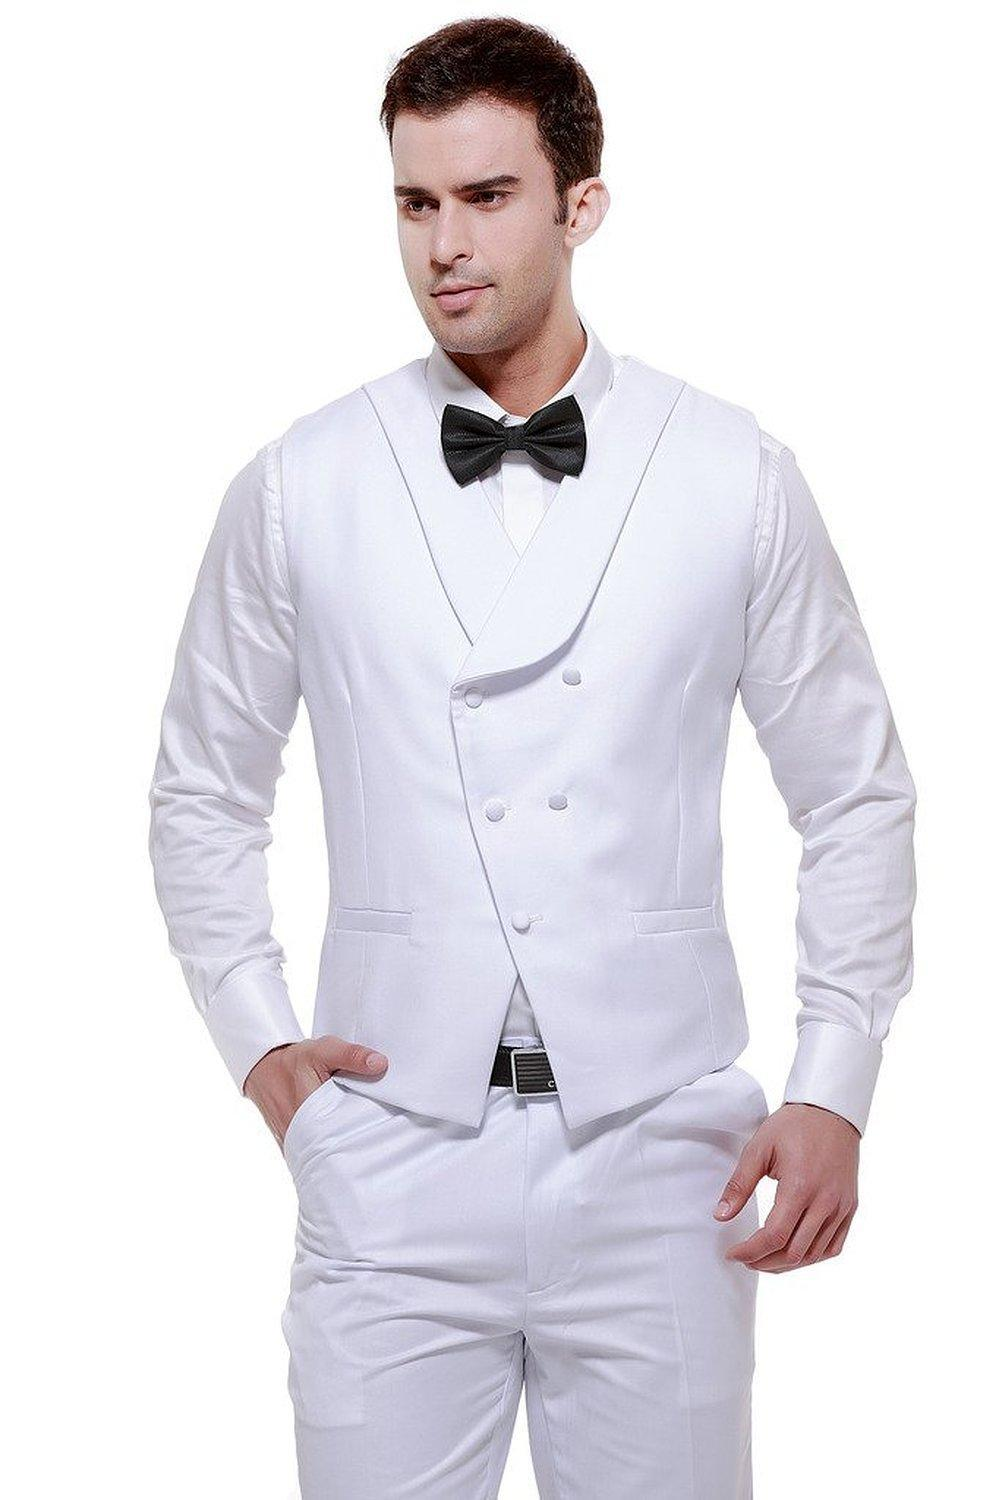 Hanayome Men'S Wedding Dresses Suits Mens Suits For Men White Suit ...